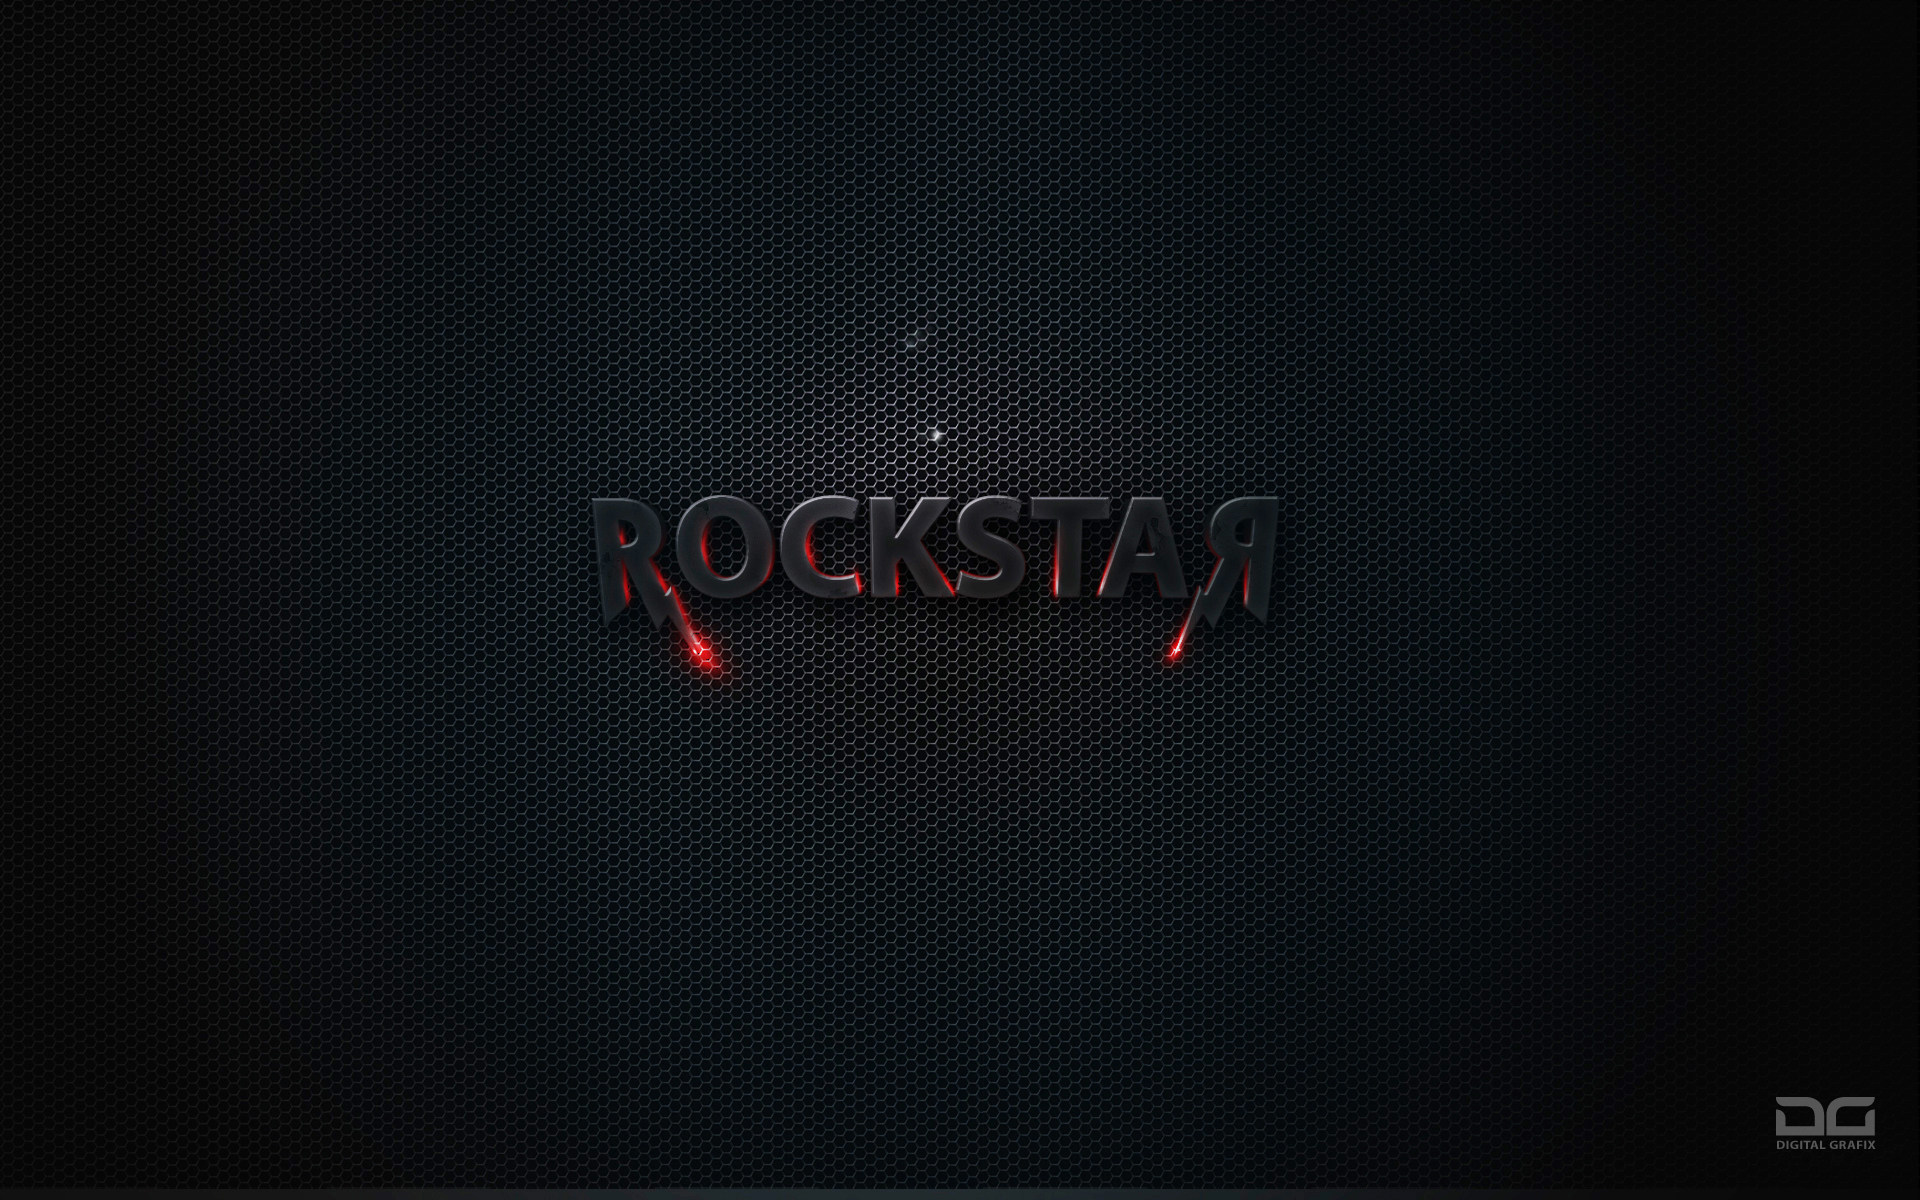 Rockstar Background 1920x1200